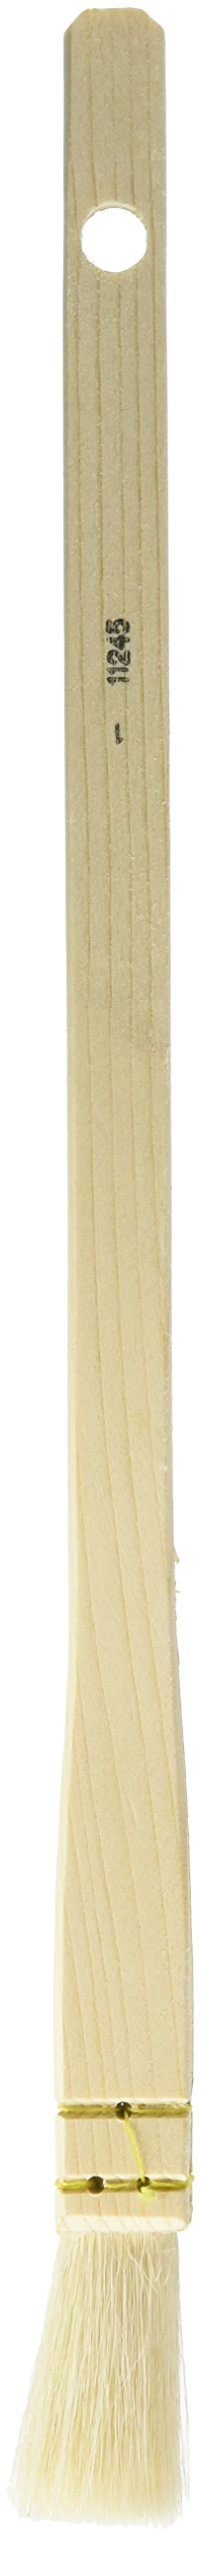 da Vinci Varnish & Priming Series 11245 Professional Hake Brush, White Goat Hair with Plainwood Handle, Size 1 (11245-1)